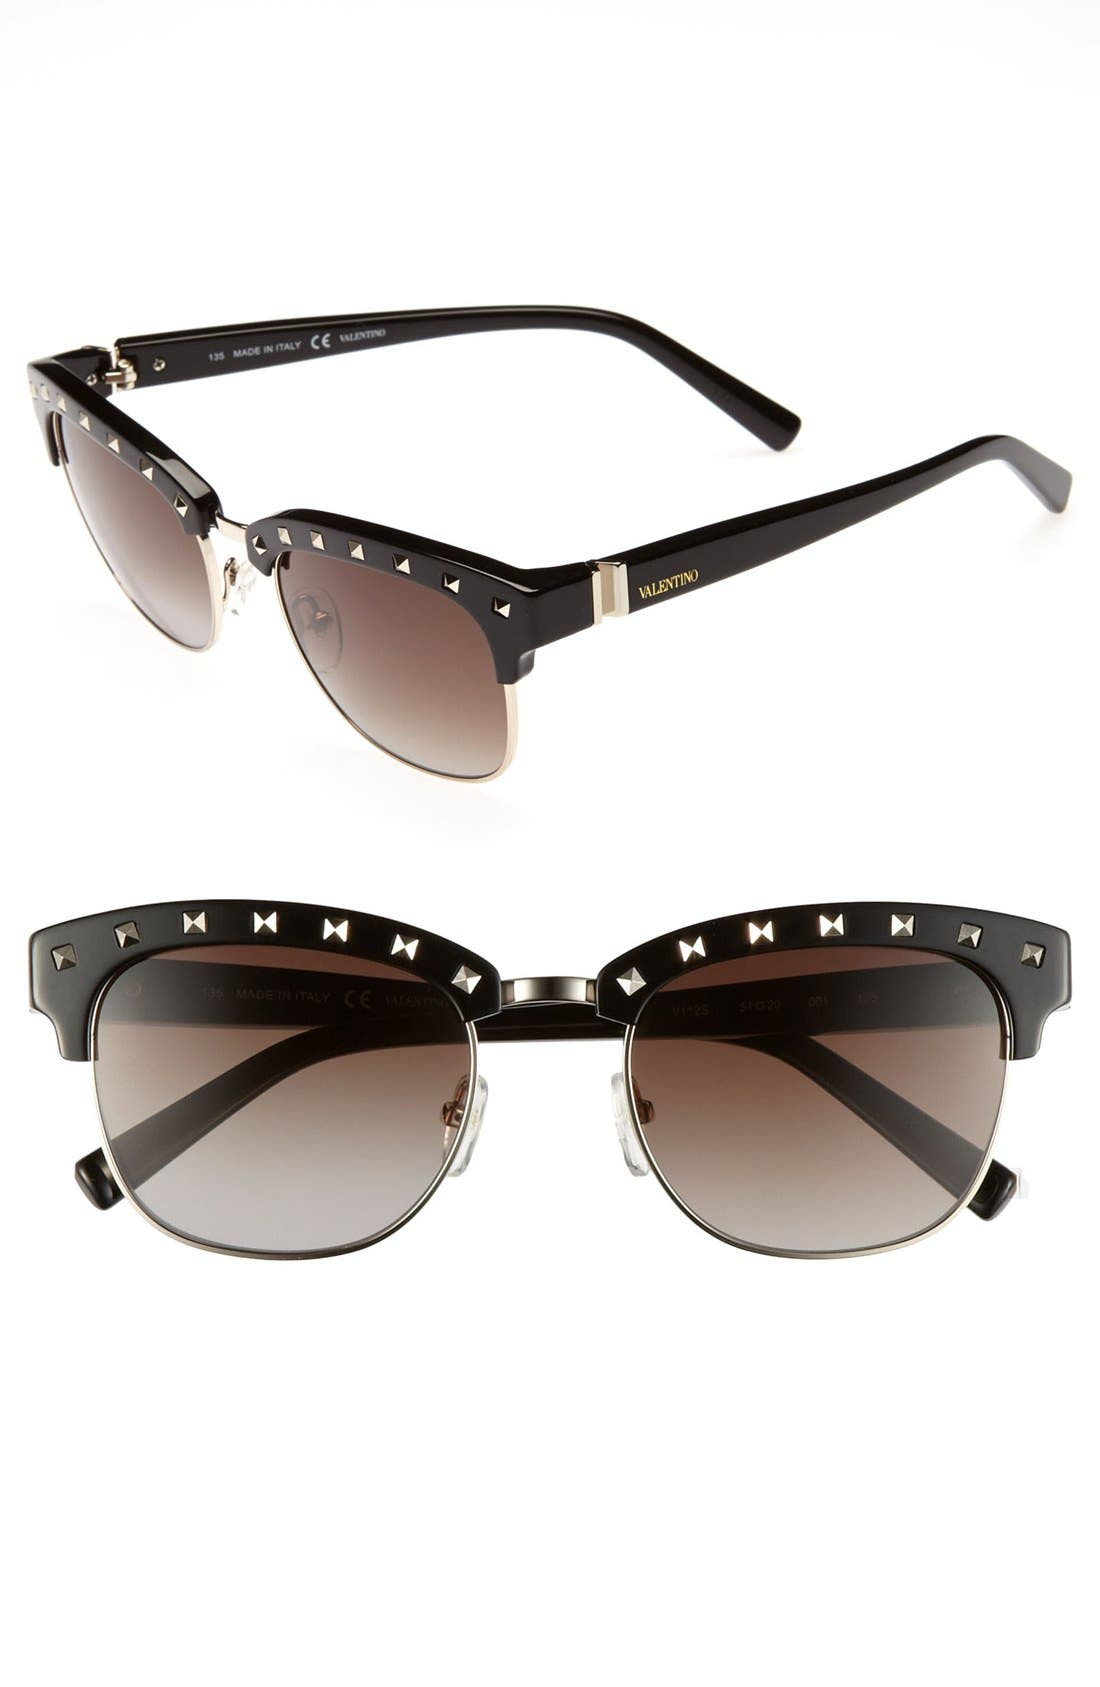 Alternate Image 1 Selected - Valentino 'Rockstud' Sunglasses (Online Only)